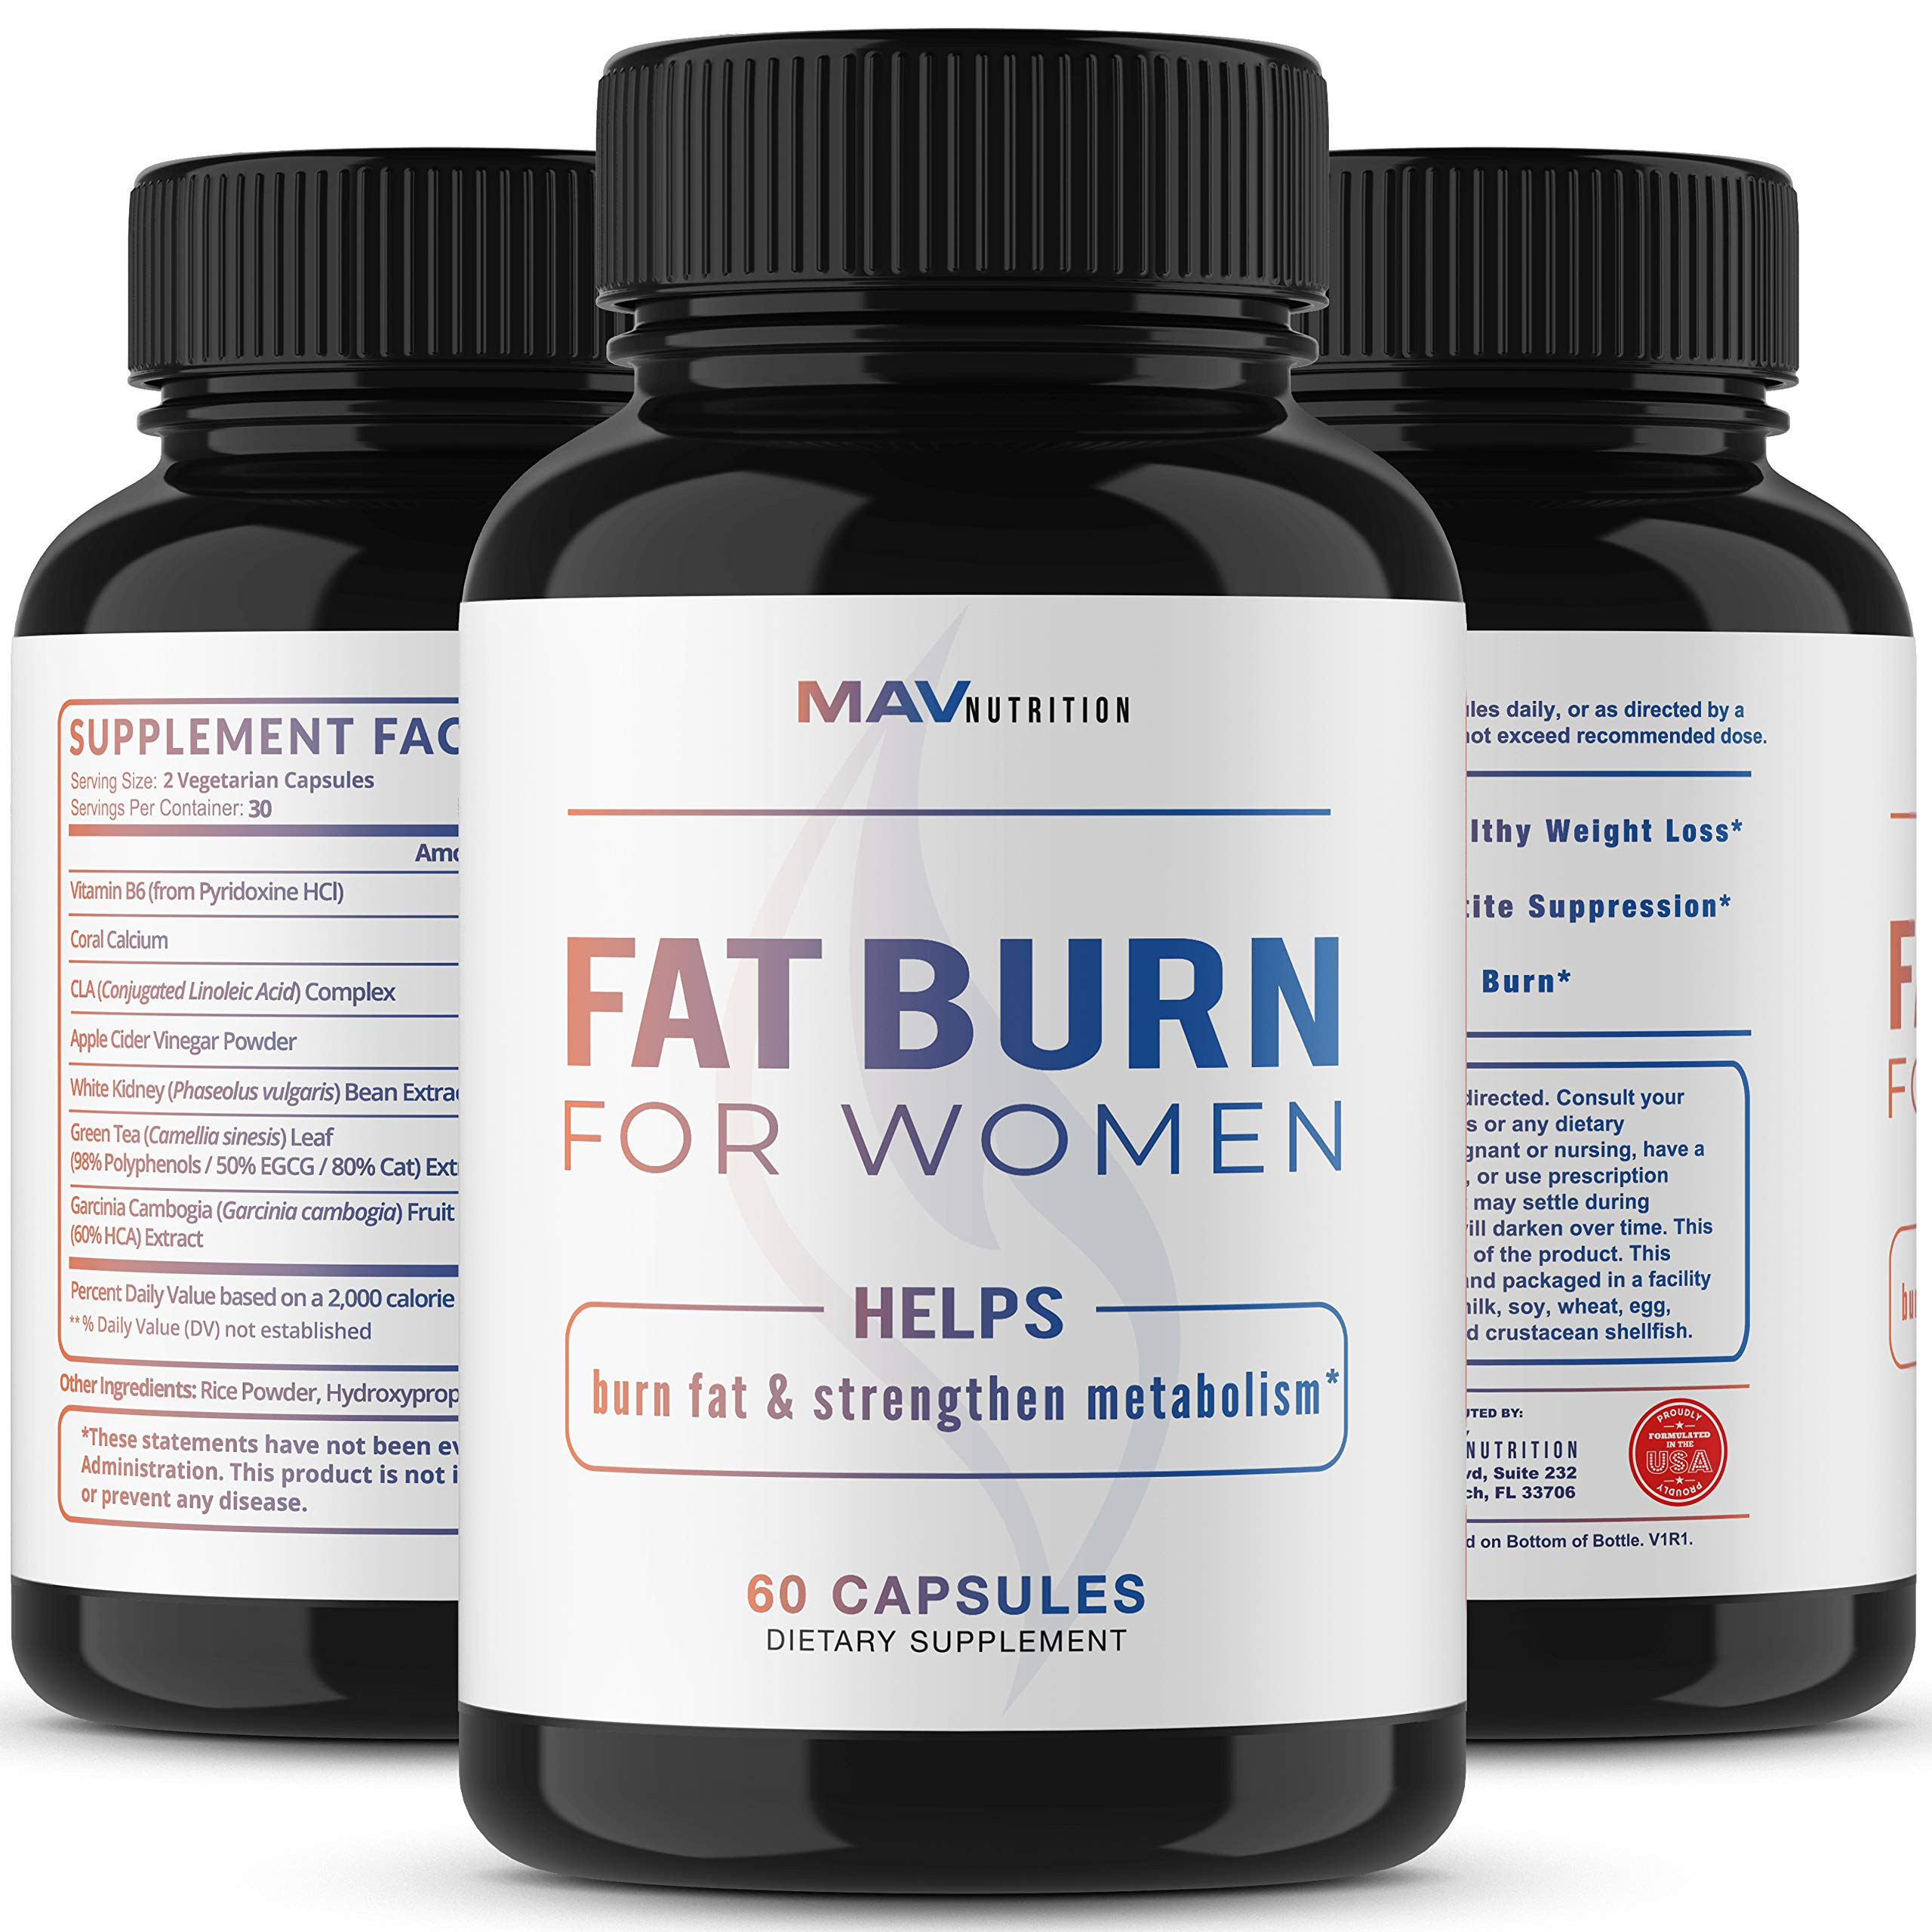 Womens Fat Burner Weight Loss Pills Designed for Increasing Healthy Metabolism, Supporting Energy Levels, Fat Loss, and Increasing Tone; Non-GMO, Gelatin-Free; 60 Vegetarian Capsules for Women by MAV Nutriton (Image #4)